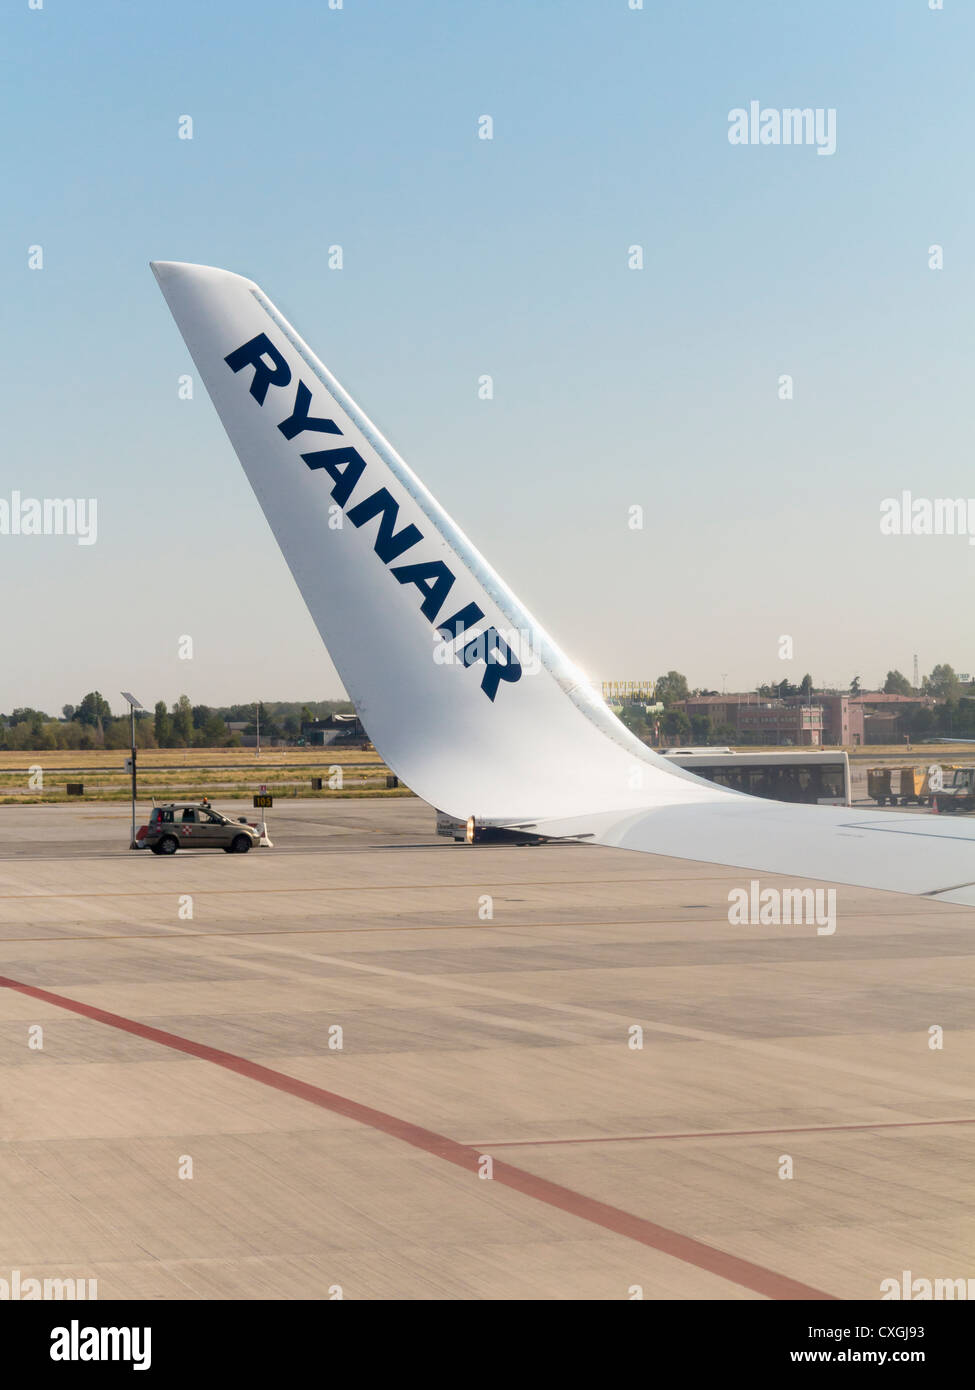 Aircraft winglet carrying the name Ryanair, Italy - Stock Image